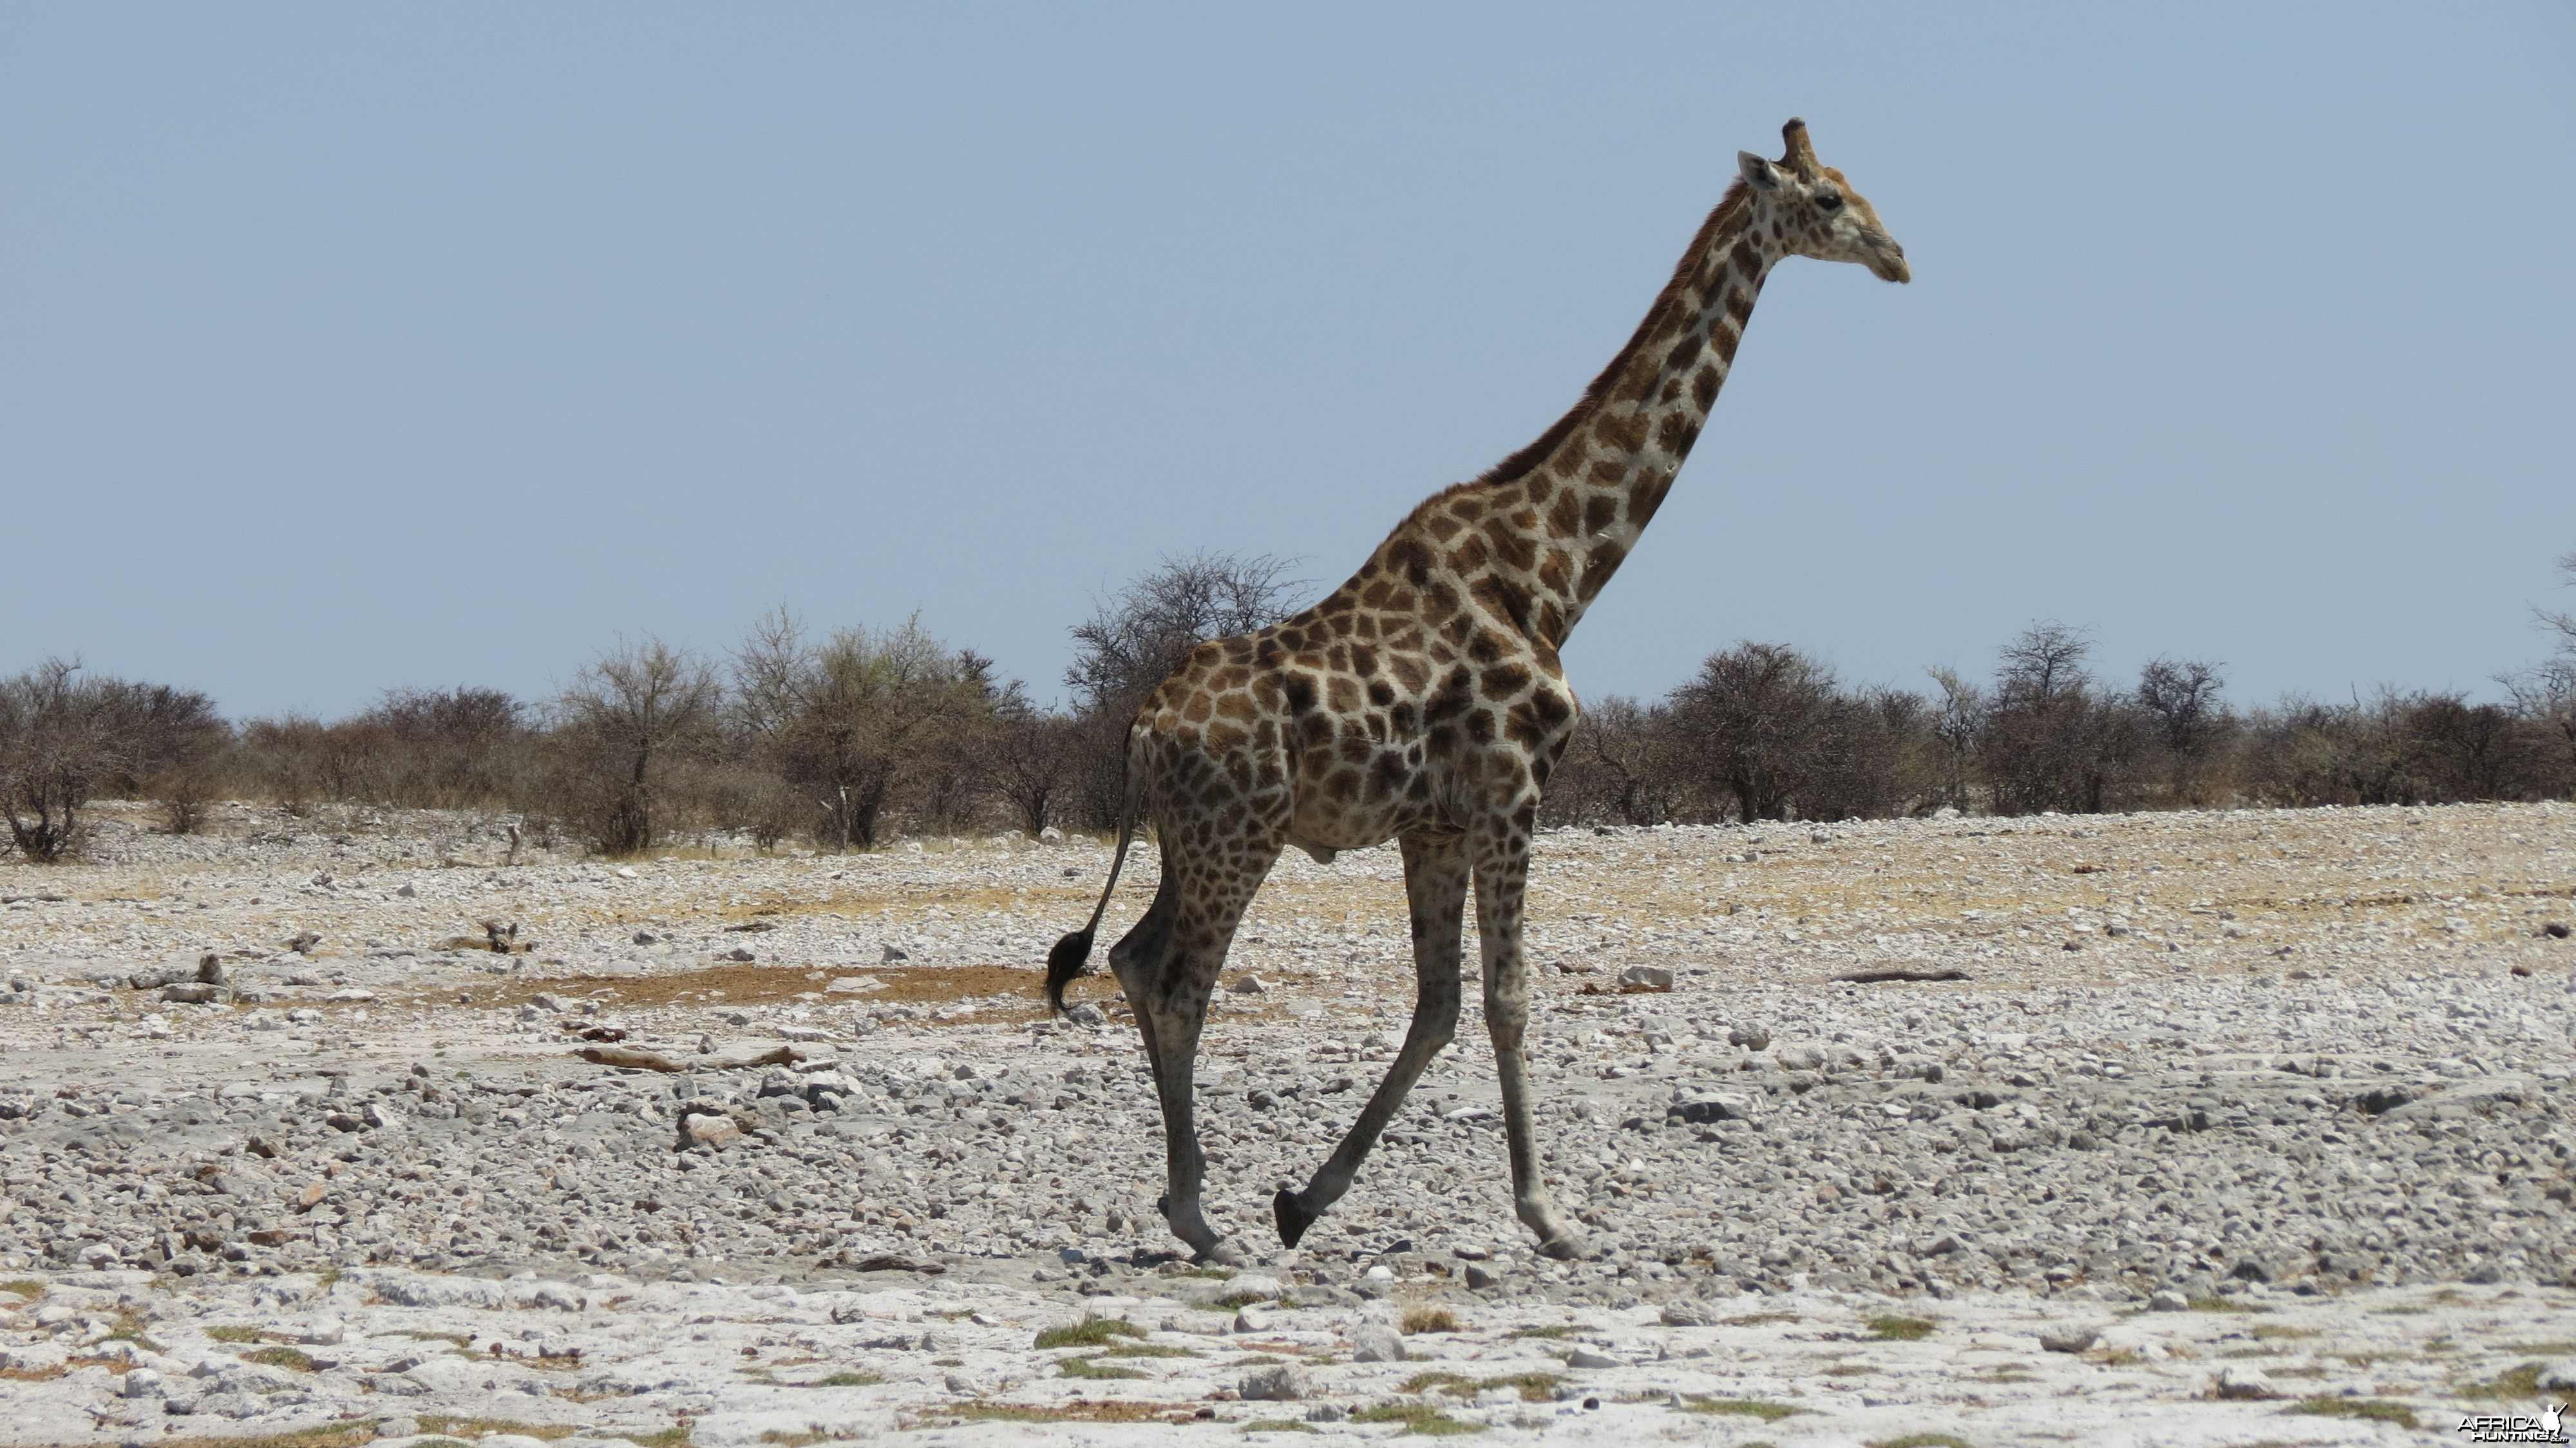 Giraffe at Etosha National Park